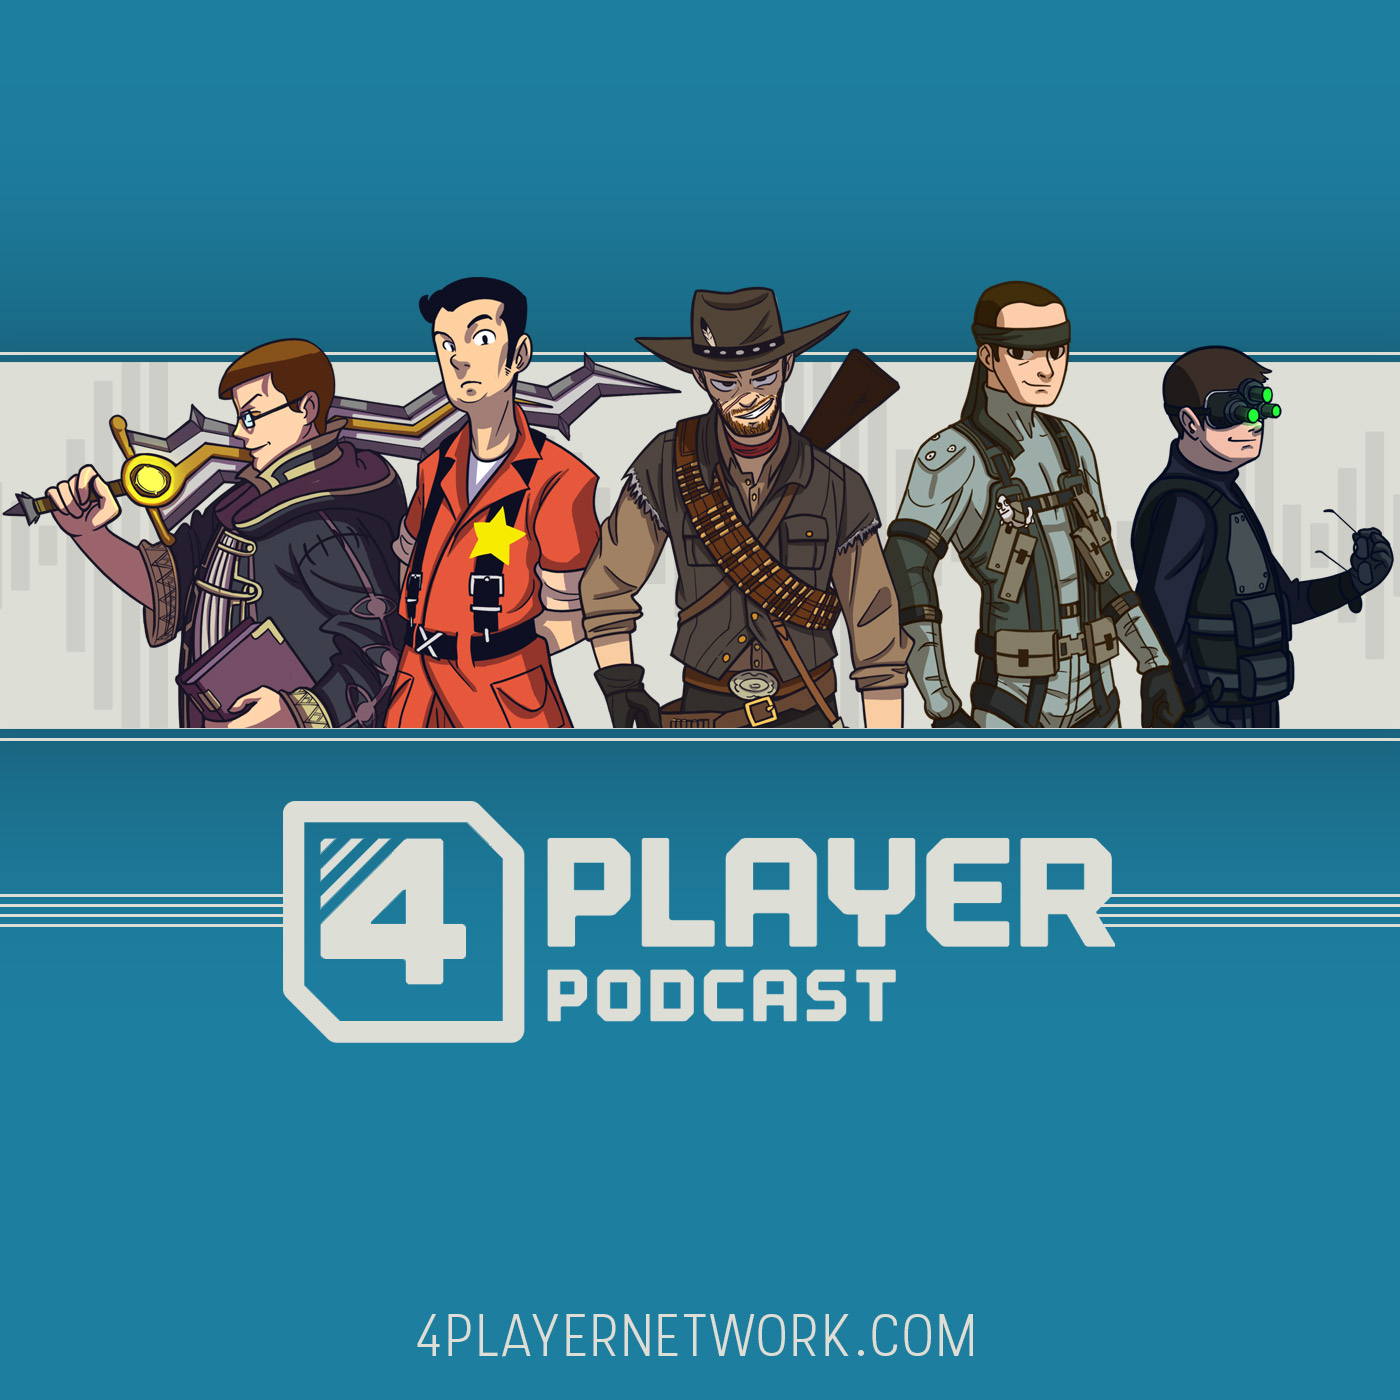 Artwork for 4Player Podcast #581 - The Zeus and Hera Show (Super Smash Bros Ultimate, Darksiders 3, and More!)